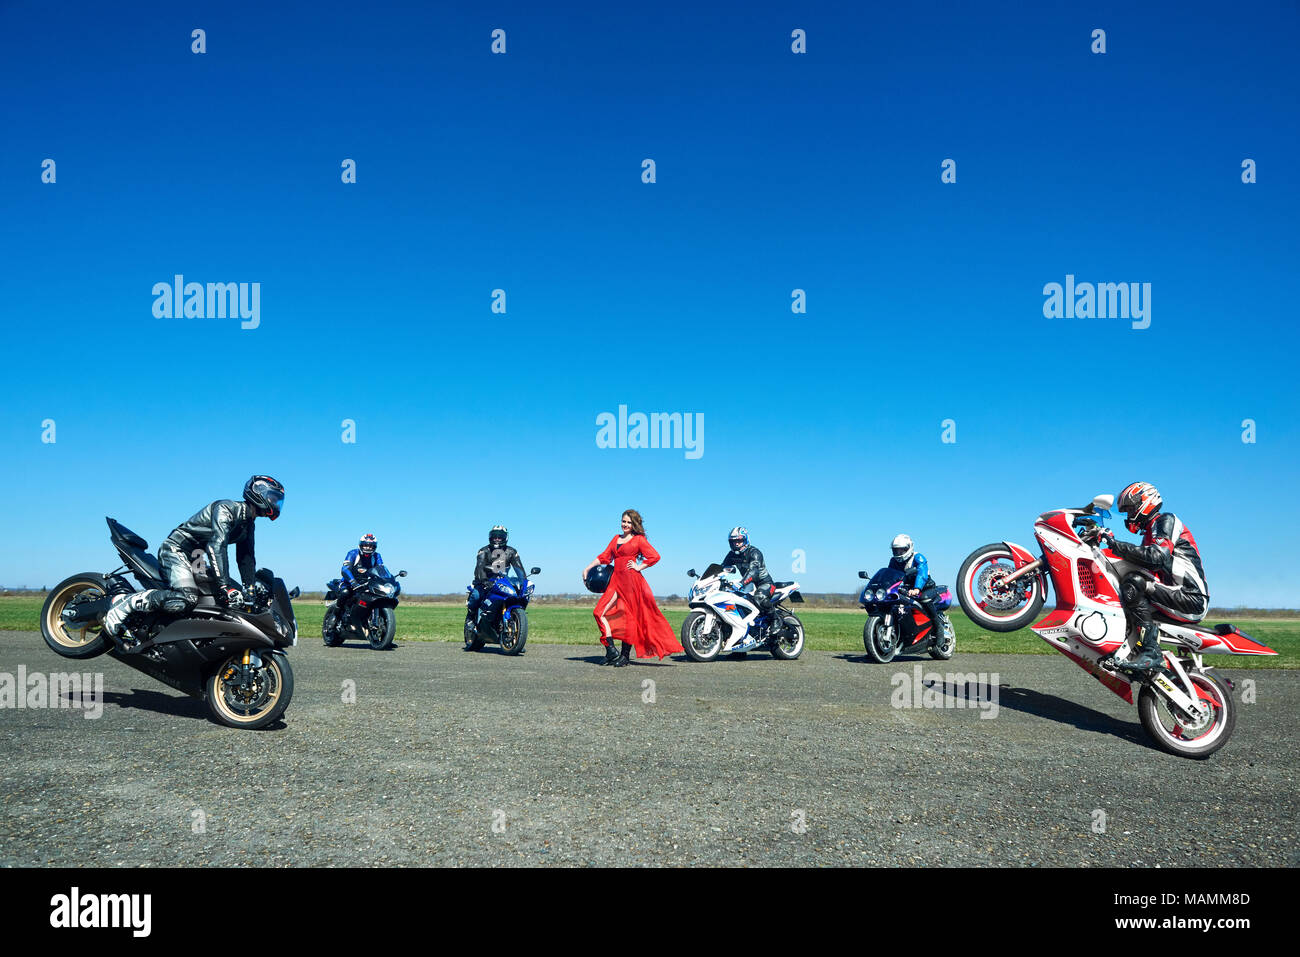 Kiev, Ukraine - 29 March 2017: Frontview of seven bikers making tricks on their motorcycles on straight field road. Bright blue sky background. Wearing protective clothes, red dispersing dress. - Stock Image